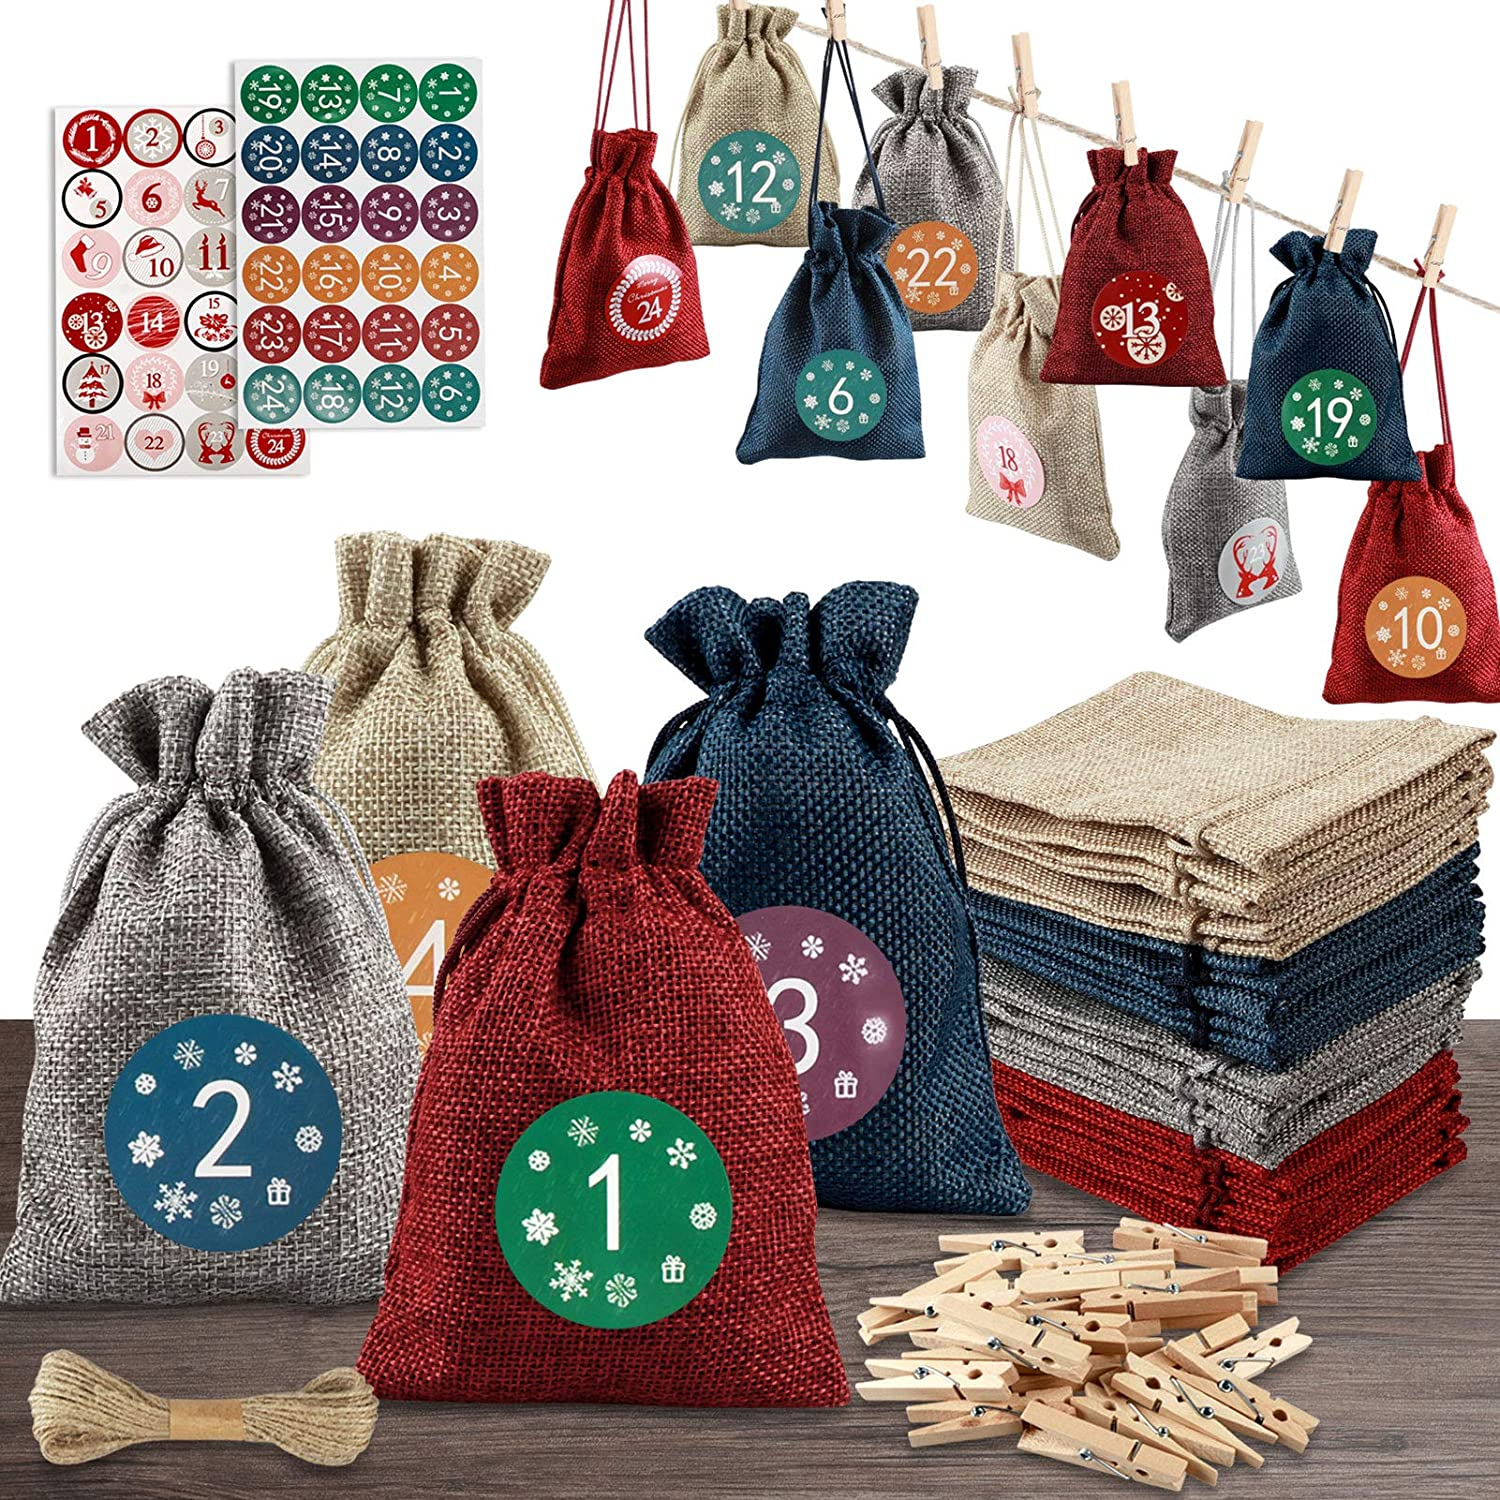 Christmas Advent Calendar 2020,24 Days Countdown Calendar Christmas Advent Gift Bags with 24 Number Stickers DIY Xmas Countdown Christmas Decorations for Wall Home Office